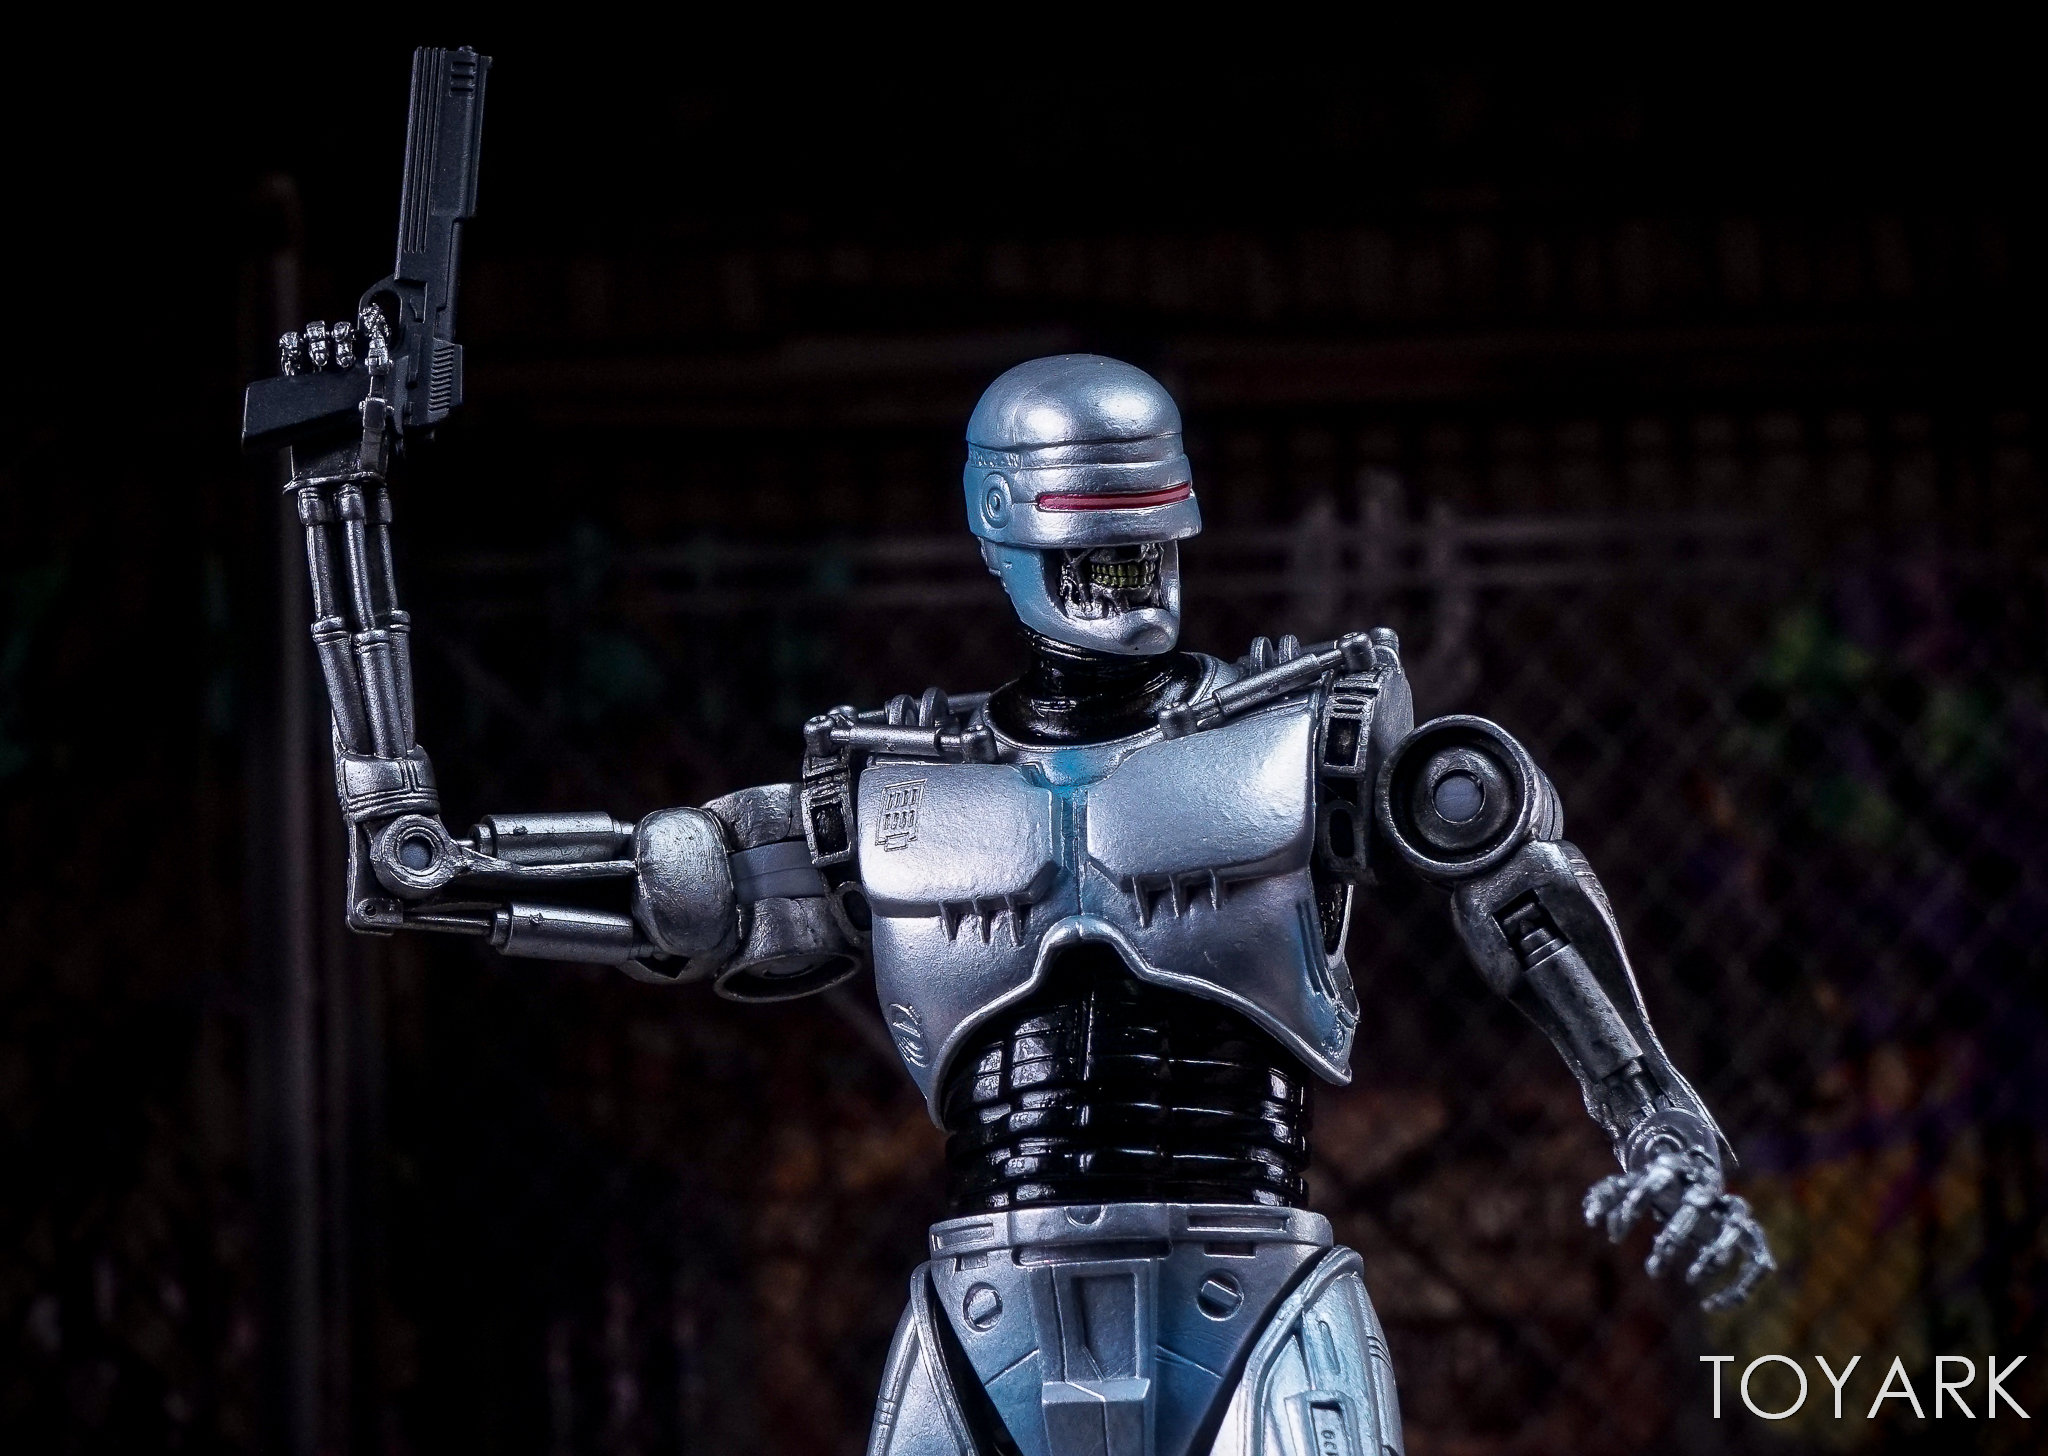 http://news.toyark.com/wp-content/uploads/sites/4/2017/12/NECA-EndoCop-and-Terminator-Dog-024.jpg